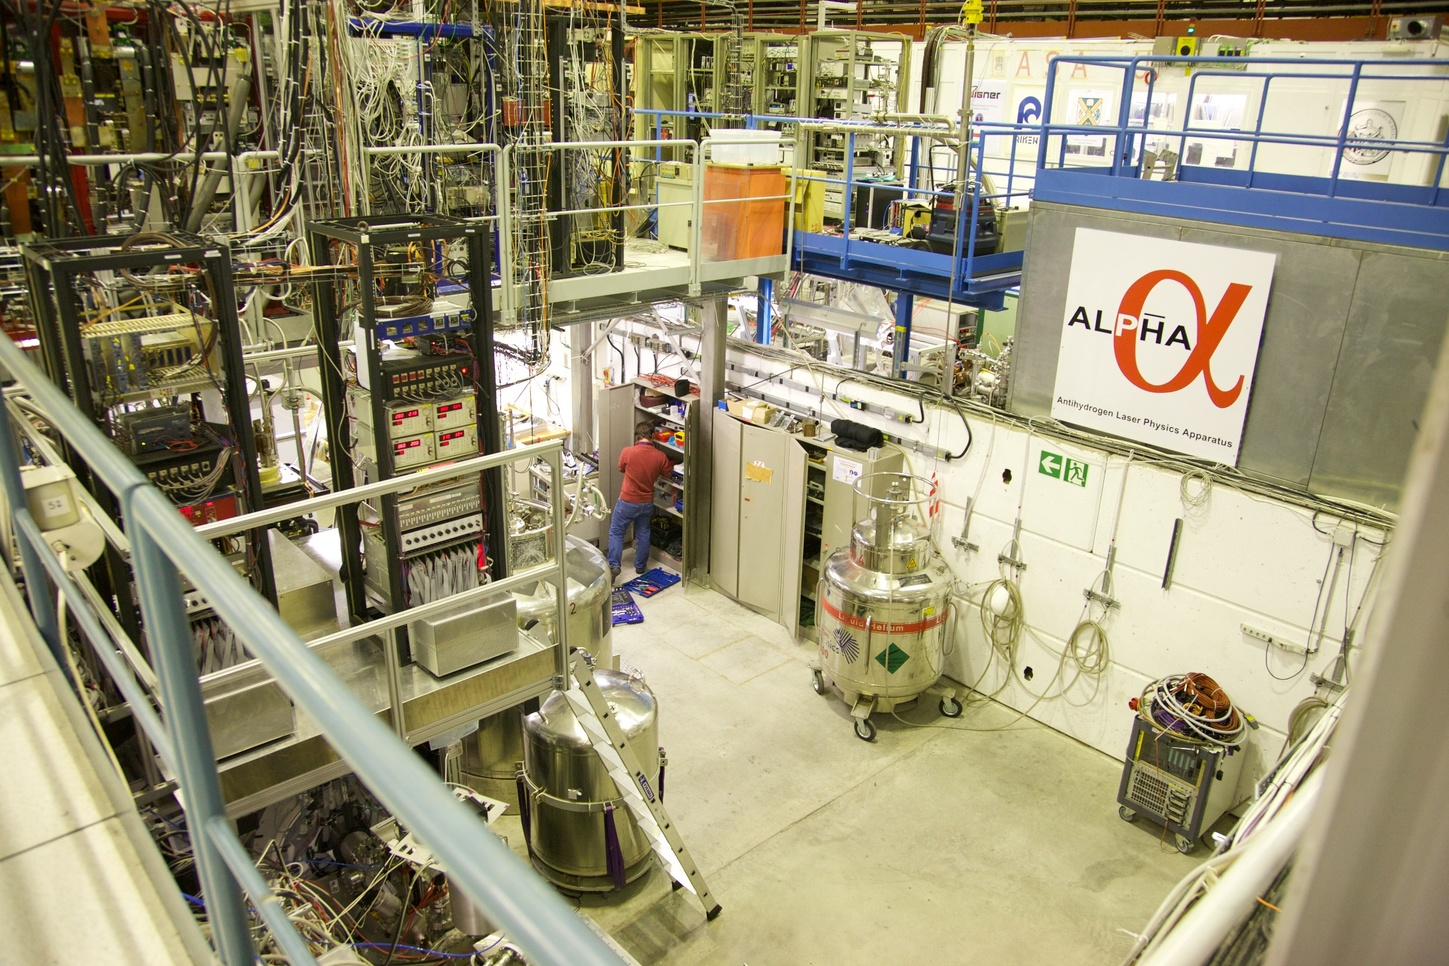 The ALPHA2 apparatus at CERN is helping to understand antimatter. - Image Credit: CERN